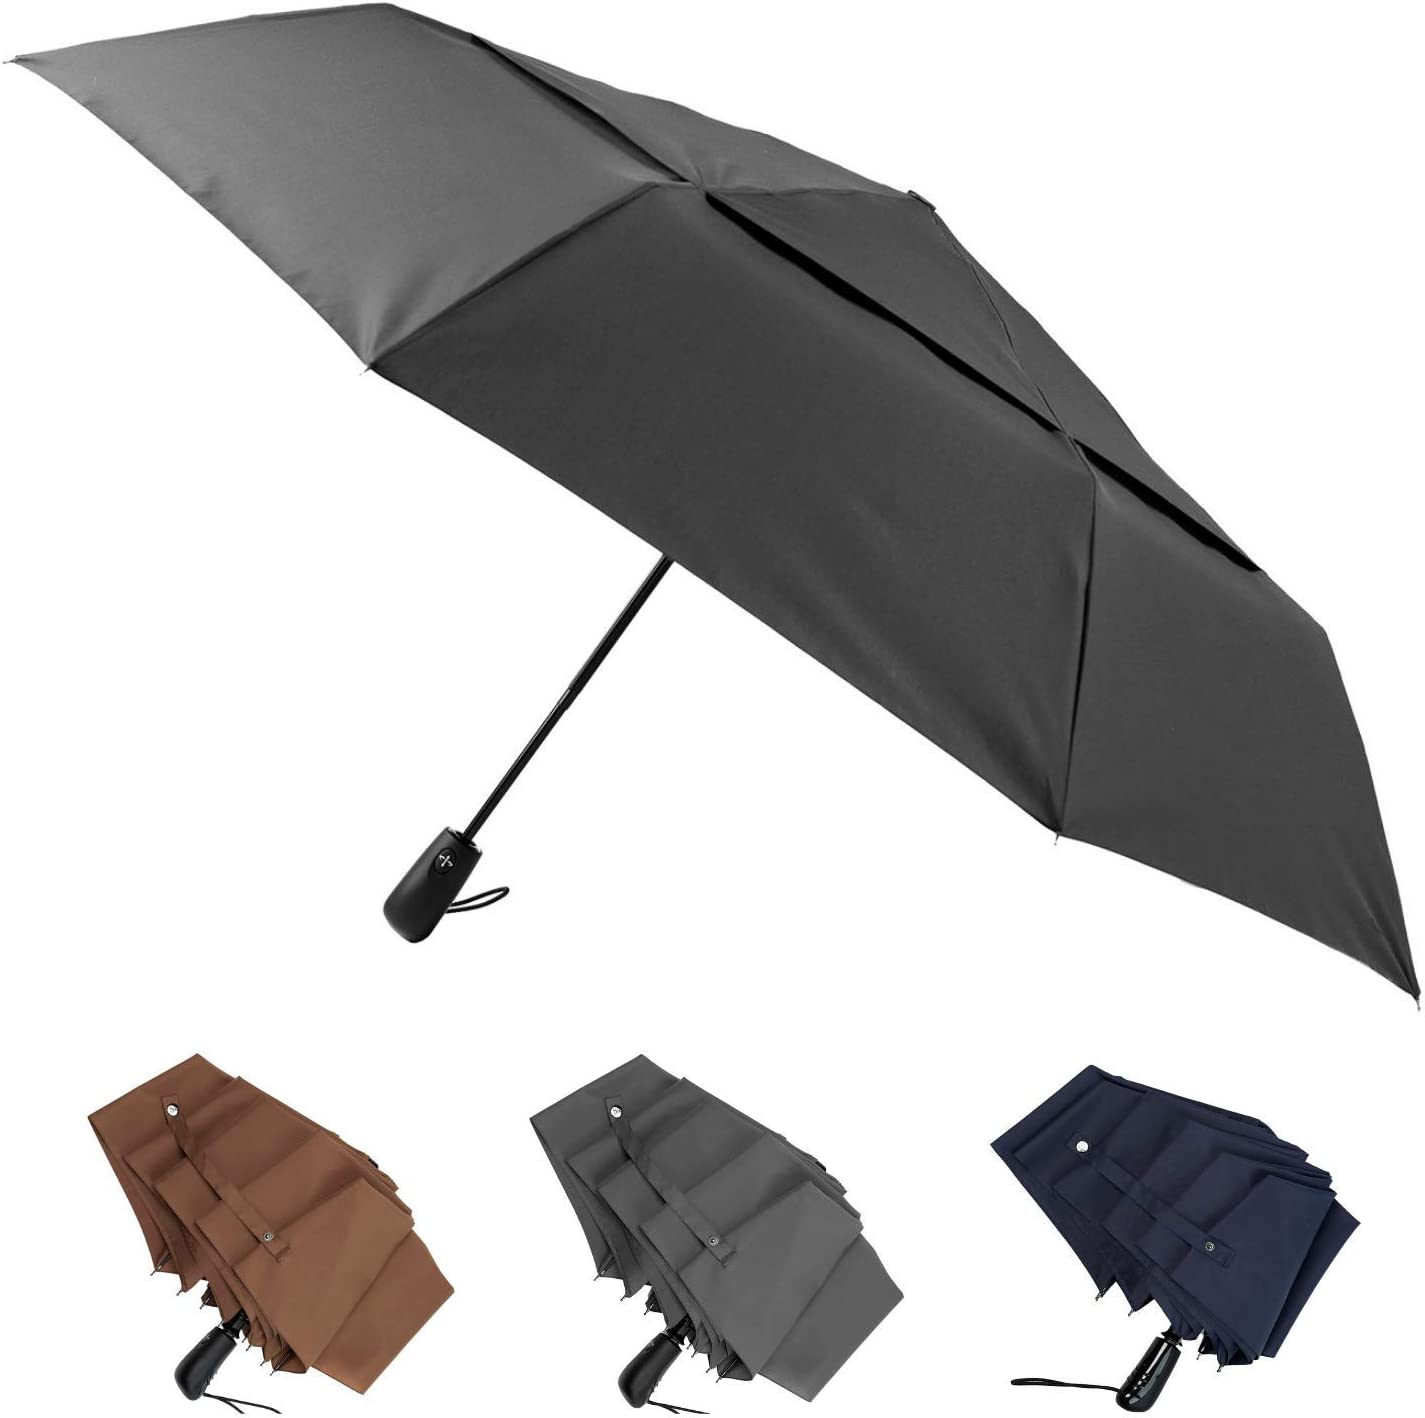 Blue 54 Inch Canopy Big Enough To Fit In 2 Adults Large Windproof Umbrella Folds Into Portable Travel Size Auto Open Close and Patented Vortex System For Superior Safety And Durability